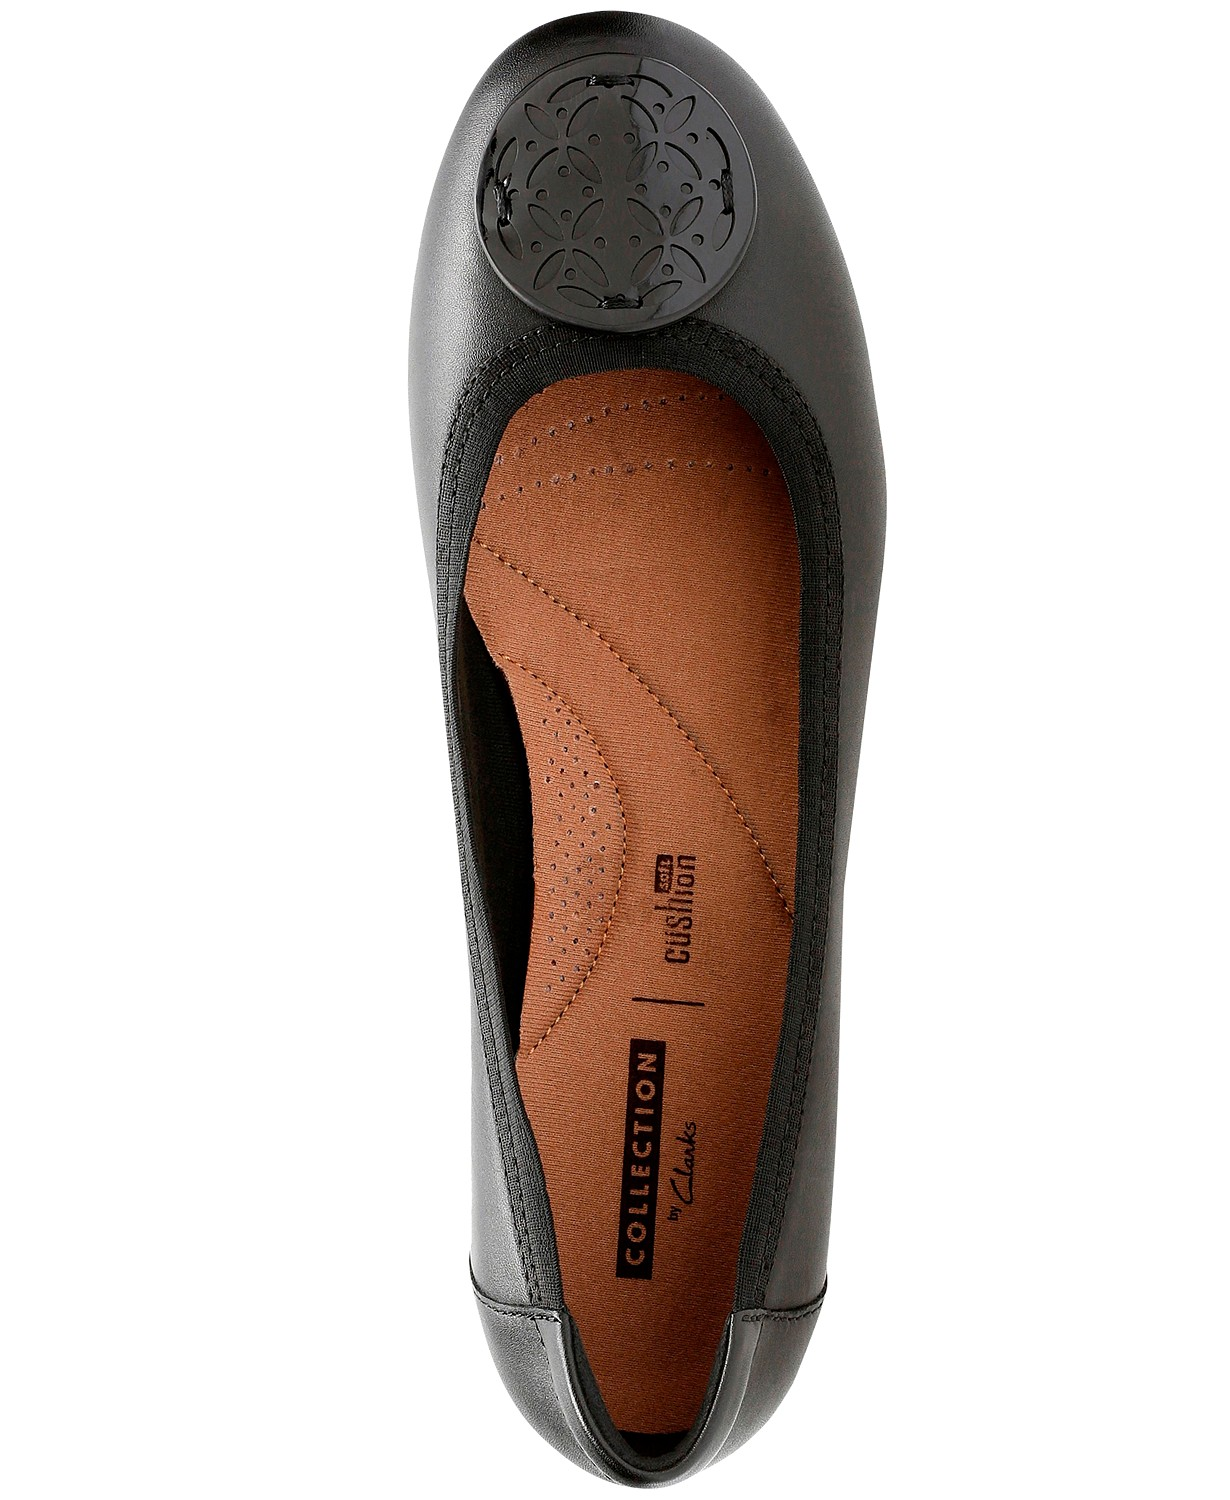 a0ea7494aa6d Macys  Clarks Collection Womens Gracelin Lola Flats for  37.93 (Was  85) +  Free Shipping.